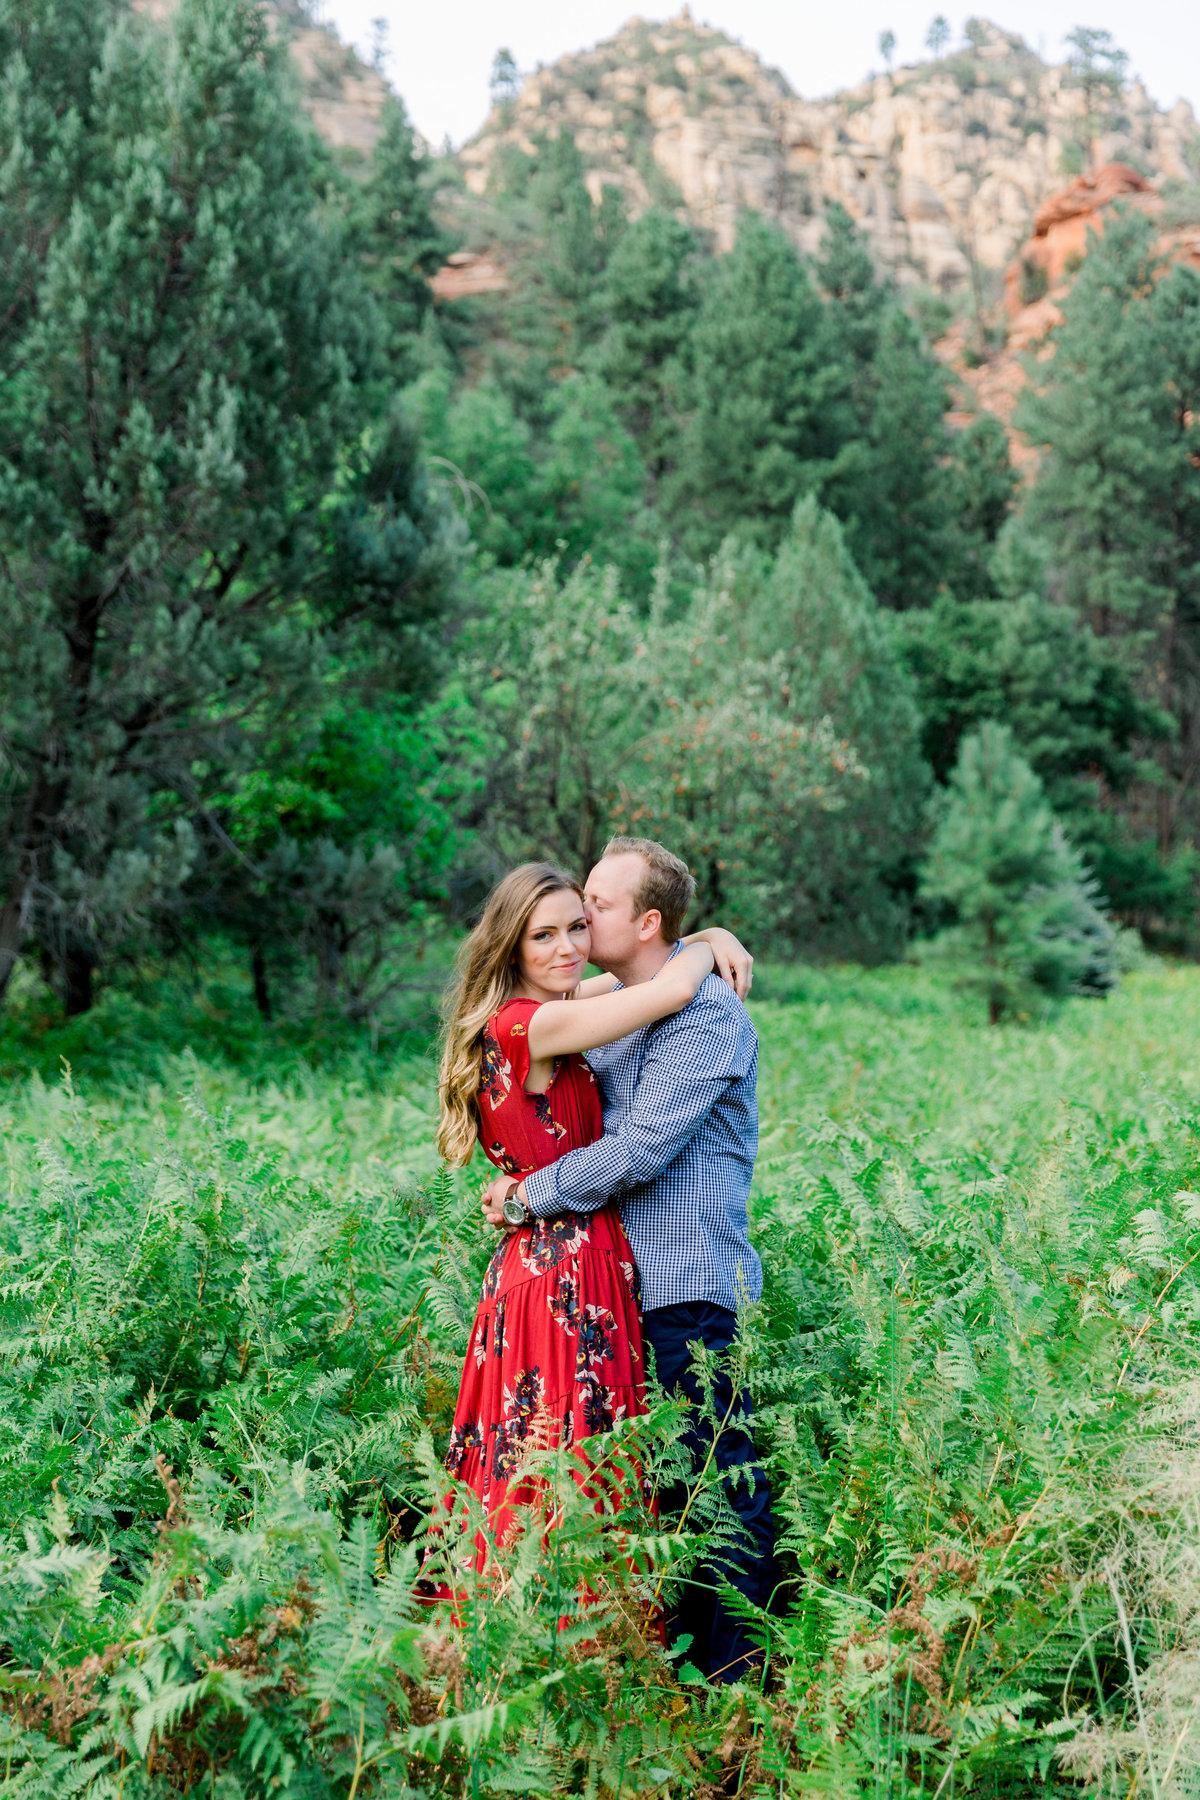 Karlie Colleen Photography - Sarah & Bradley - Sedona Arizona Engagement -2